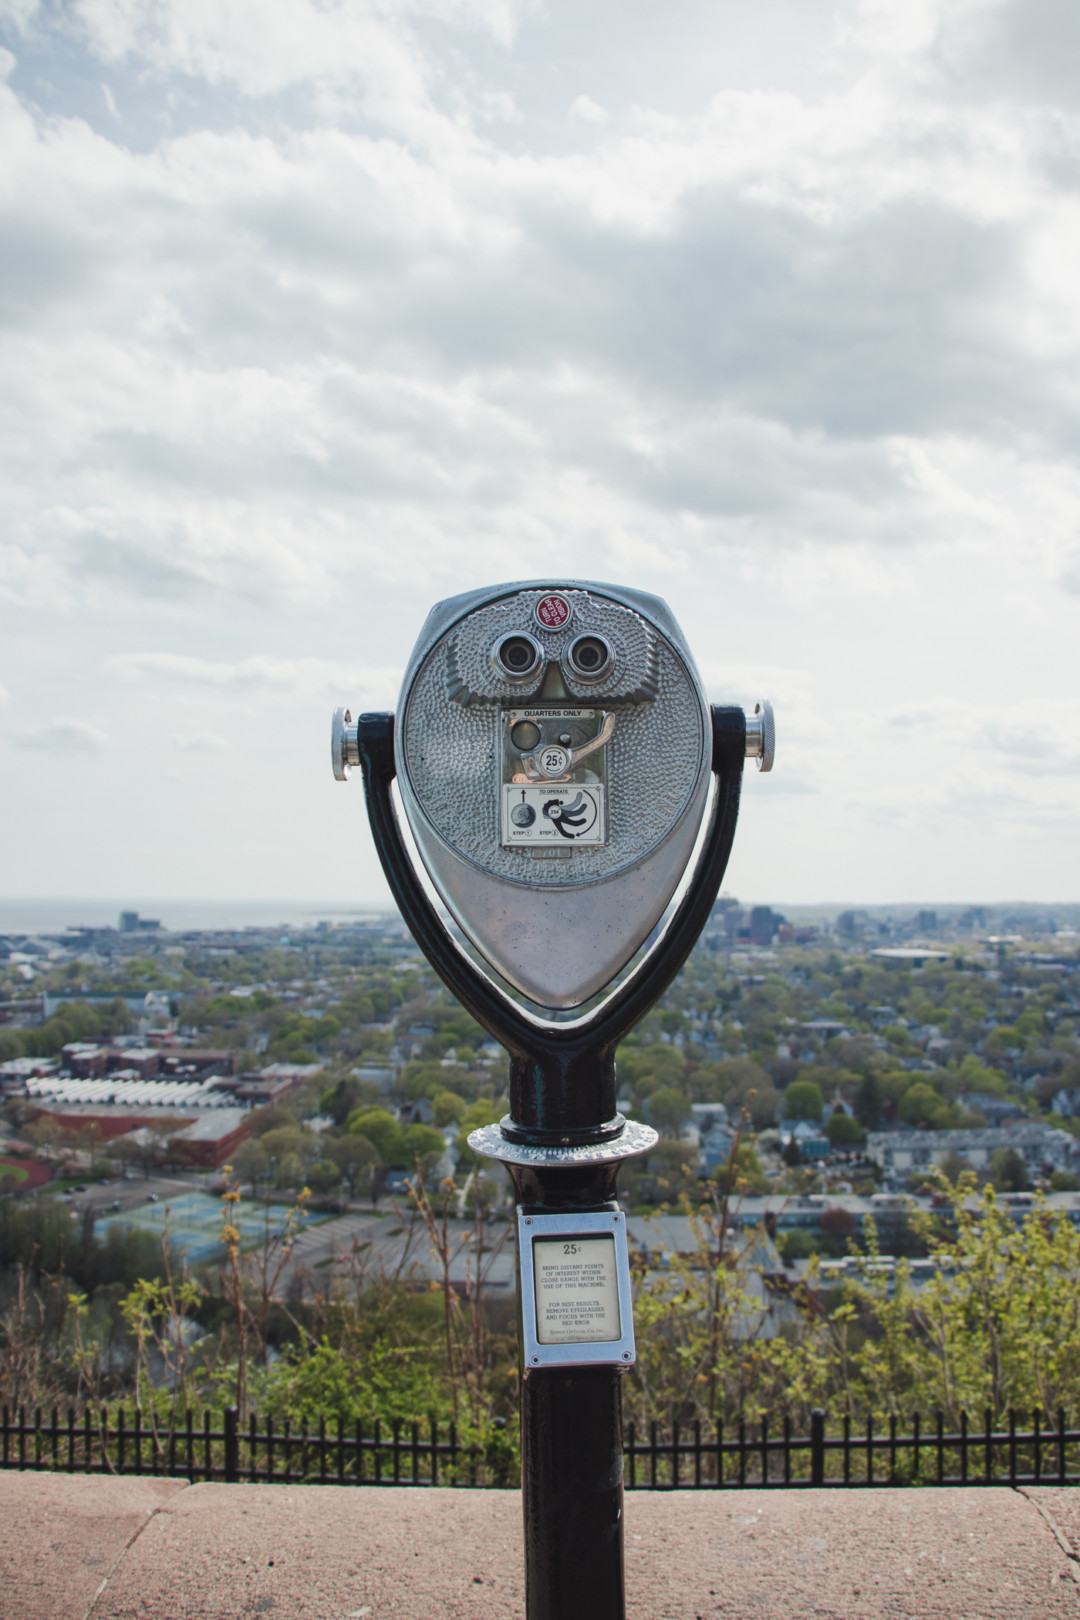 Tower Viewer at East Rock Park in New Haven, CT